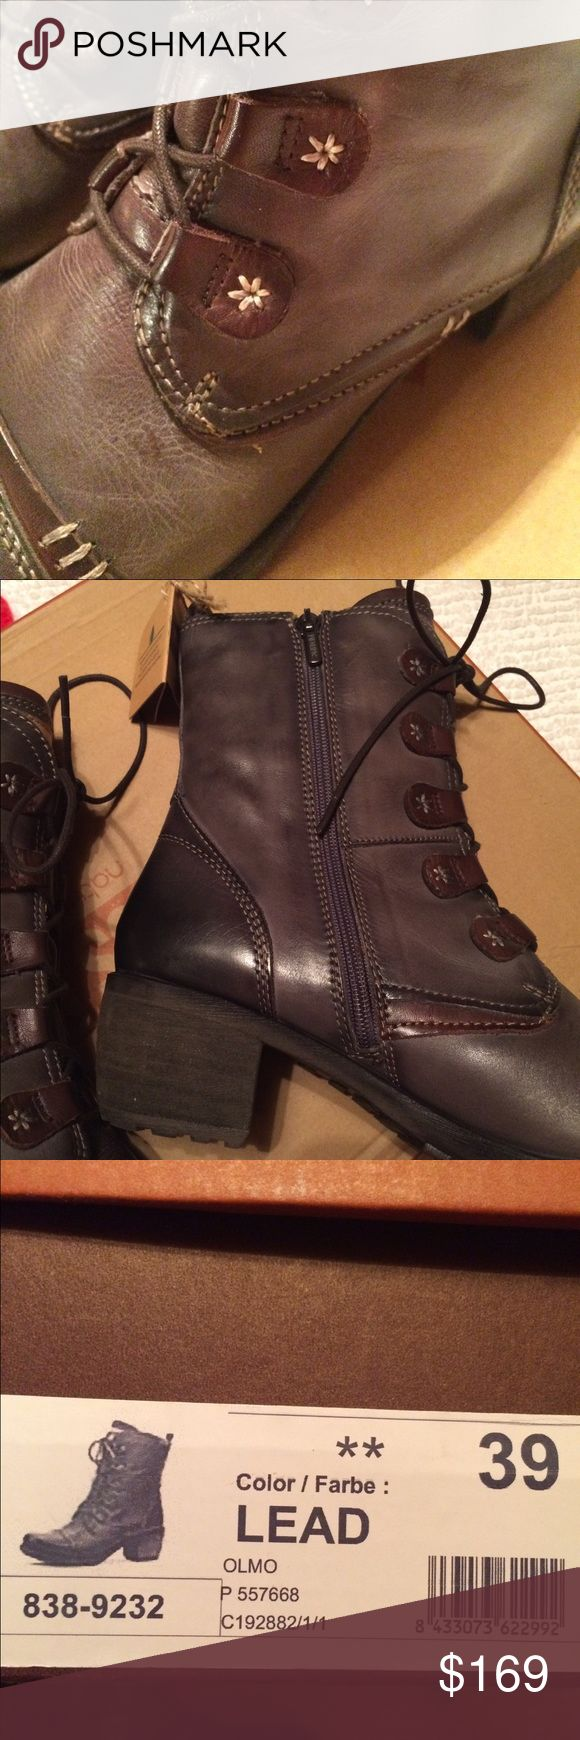 """Pikolinos NEW in box boots - color Lead Semi-vegetable tanned leather upper with contrasting detail. Feminine Flair and rugged style come together with these ultra chic boots!  Lace up closure with side zipper. Generous interior padding and removable leather insole. Heel height is 13/4"""". Shaft is 7 1/4"""". Platform height is 1/2"""".  Soft and supple. Great boot. Tags and original box!  Brand new. Retail $215 PIKOLINOS Shoes Lace Up Boots"""